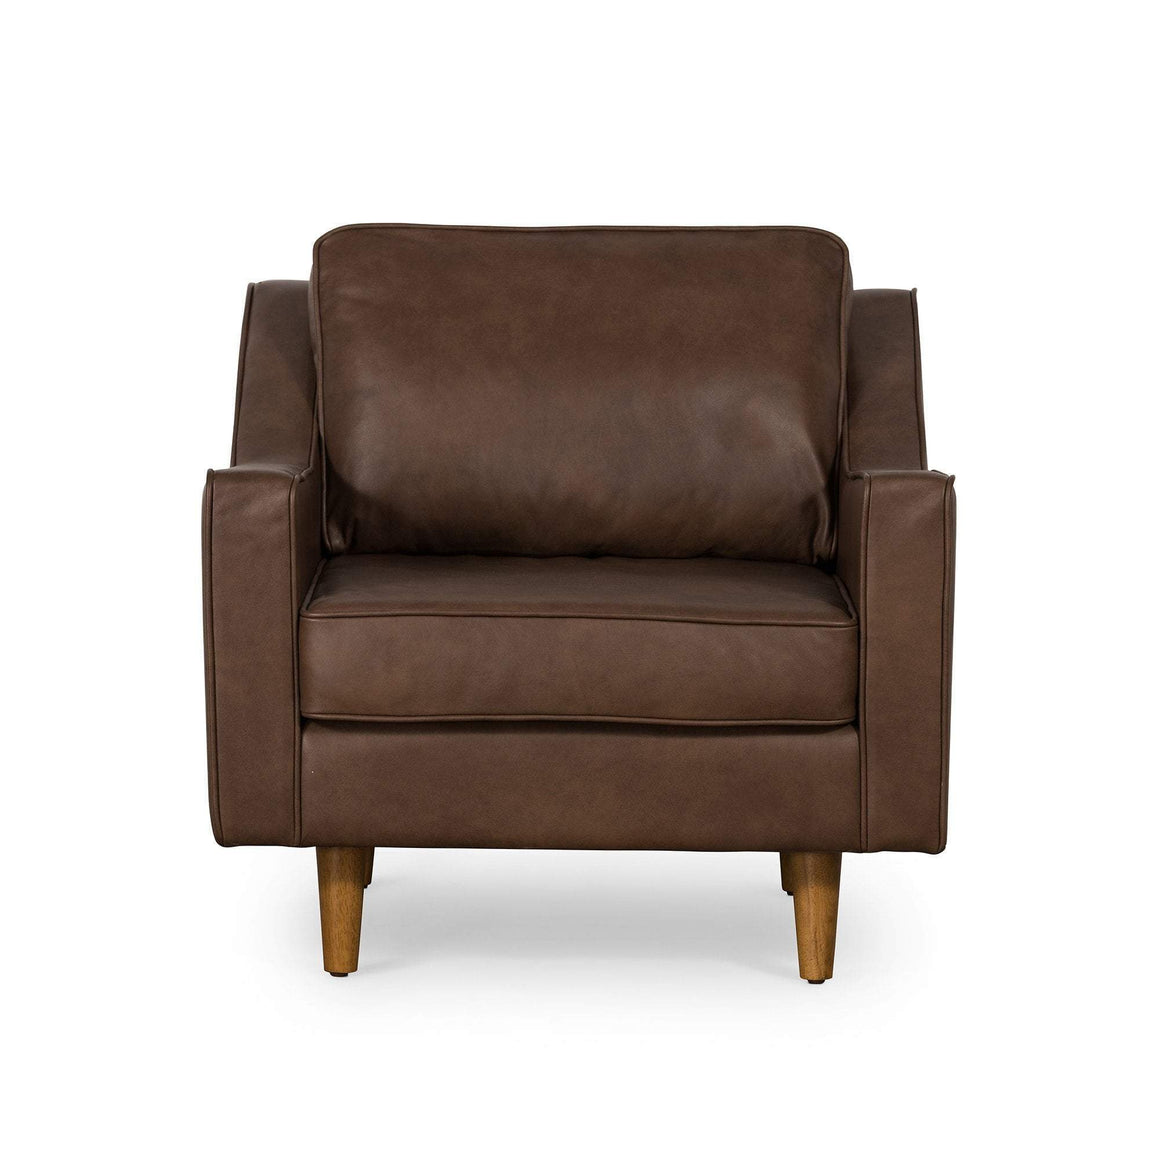 TAYLOR ARMCHAIR IN BROWN LEATHER